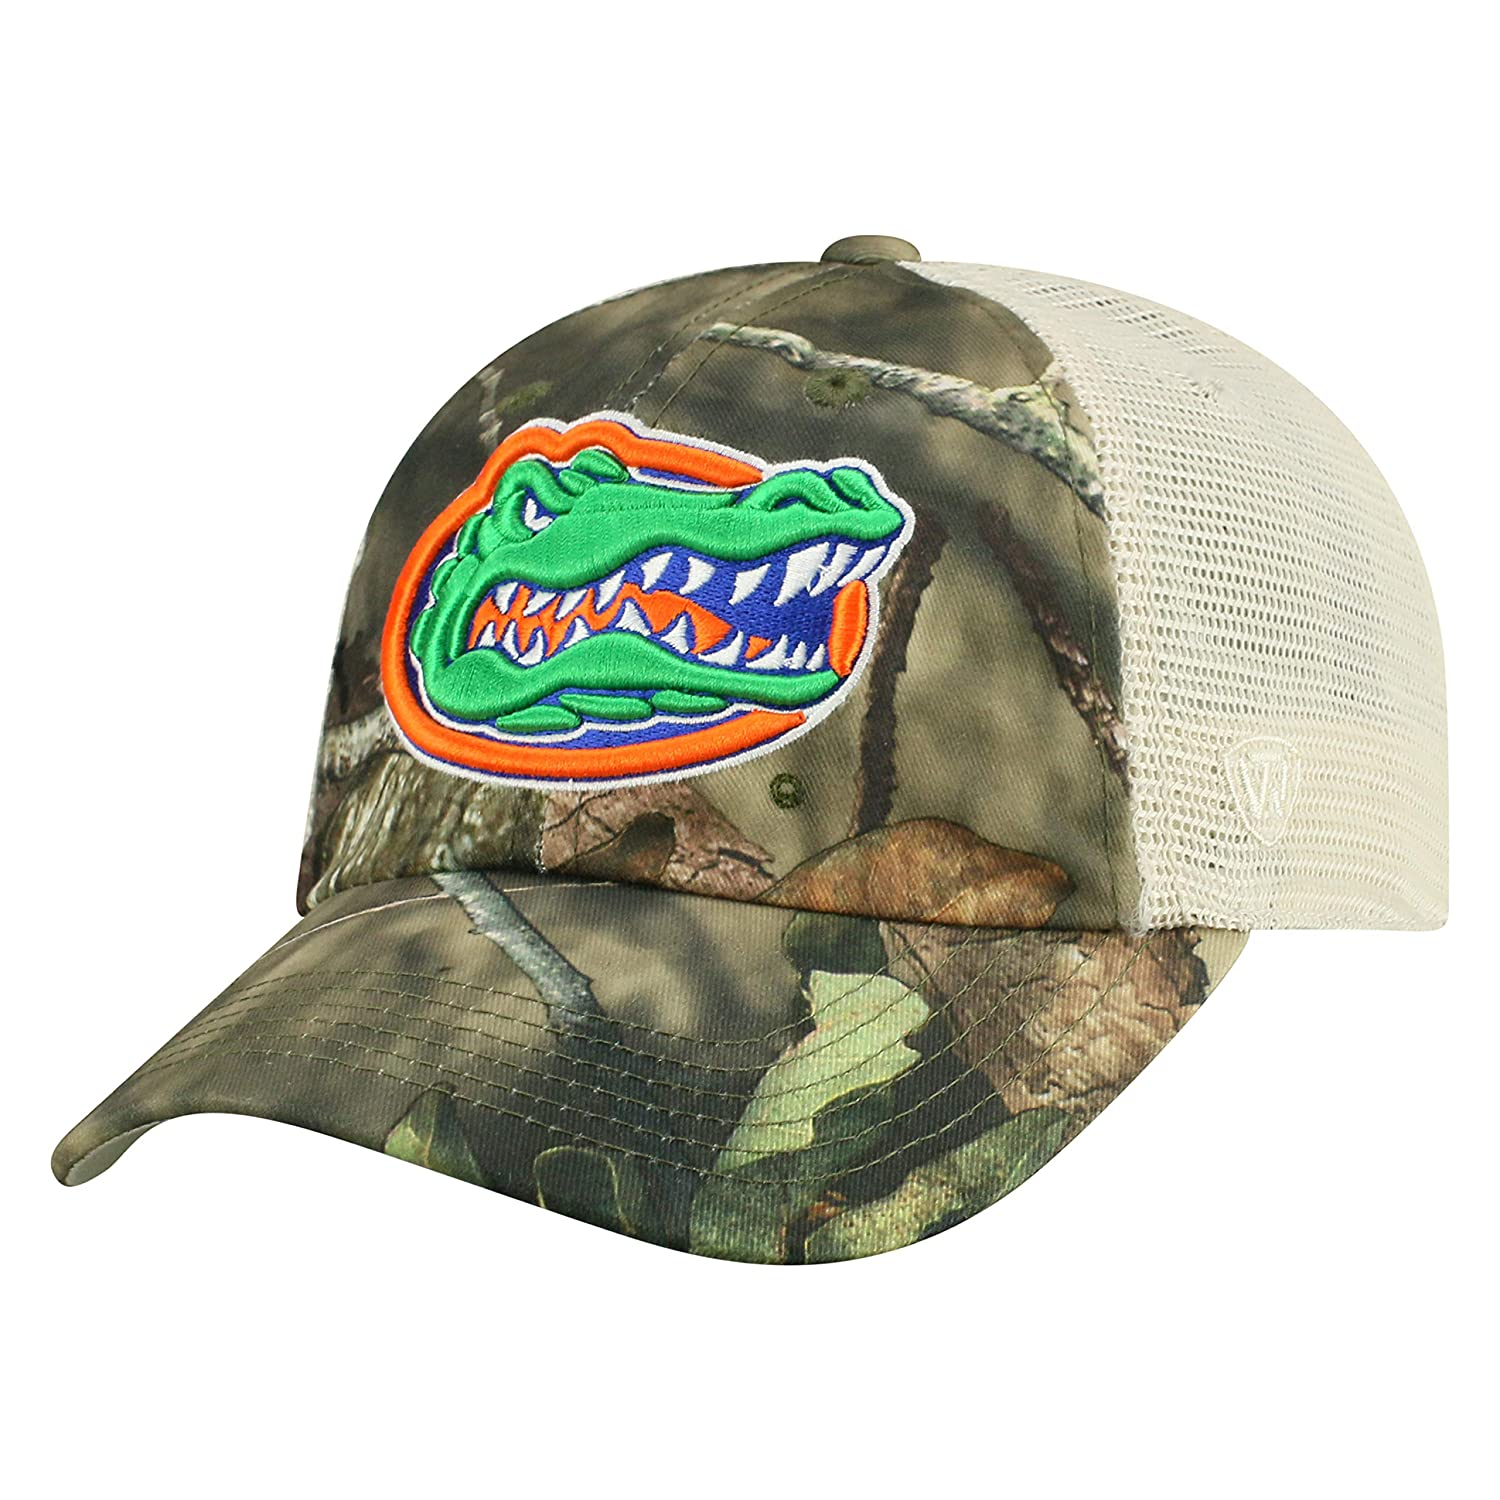 Amazon.com   Top of the World Florida Gators Official NCAA Adjustable  Remote Mossy Oak and Mesh Hat Cap 368900   Sports   Outdoors 9829f53d32d4